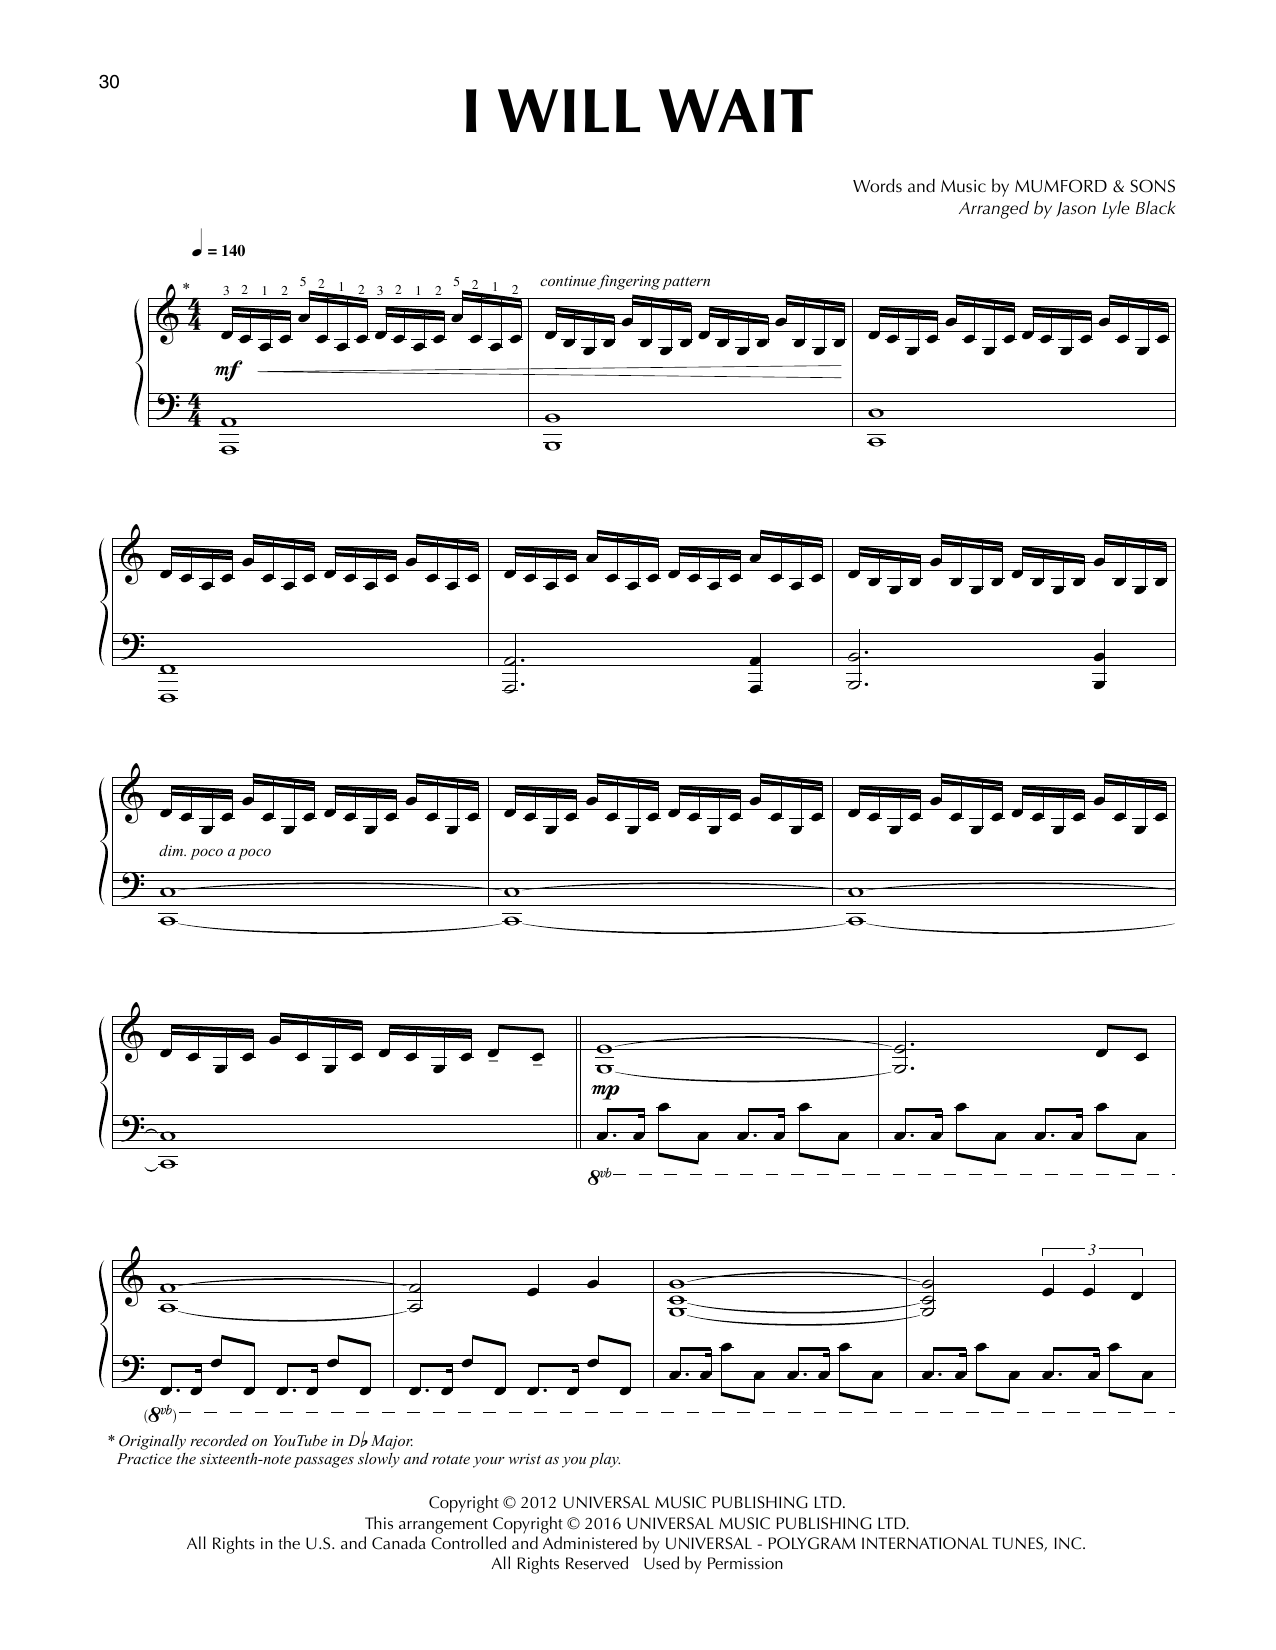 Mumford & Sons I Will Wait (arr. Jason Lyle Black) sheet music notes and chords. Download Printable PDF.